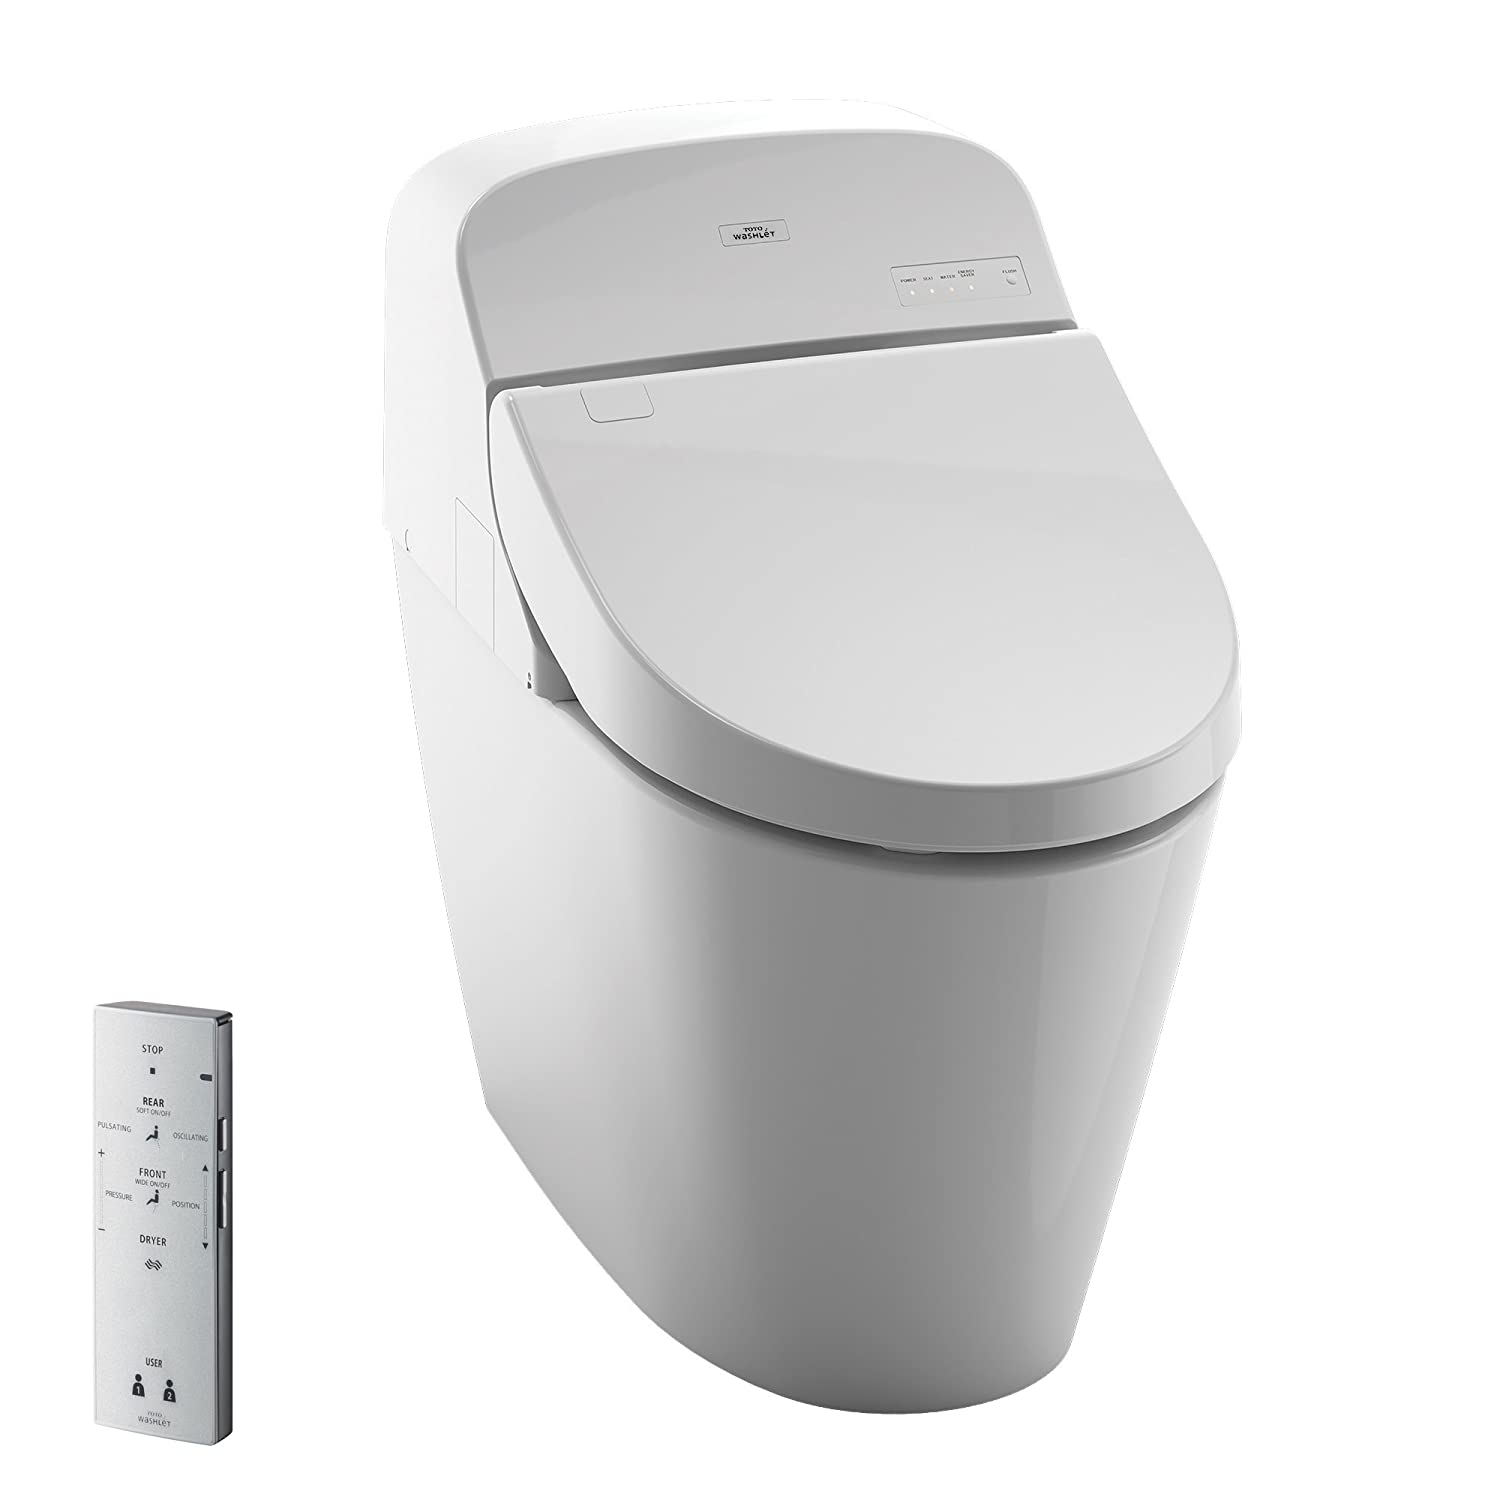 Surprising Toto Ms920Cemfg01 1 28 Gpf 0 9 Gpf Washlet With Integrated Toilet G400 Cotton White Pdpeps Interior Chair Design Pdpepsorg